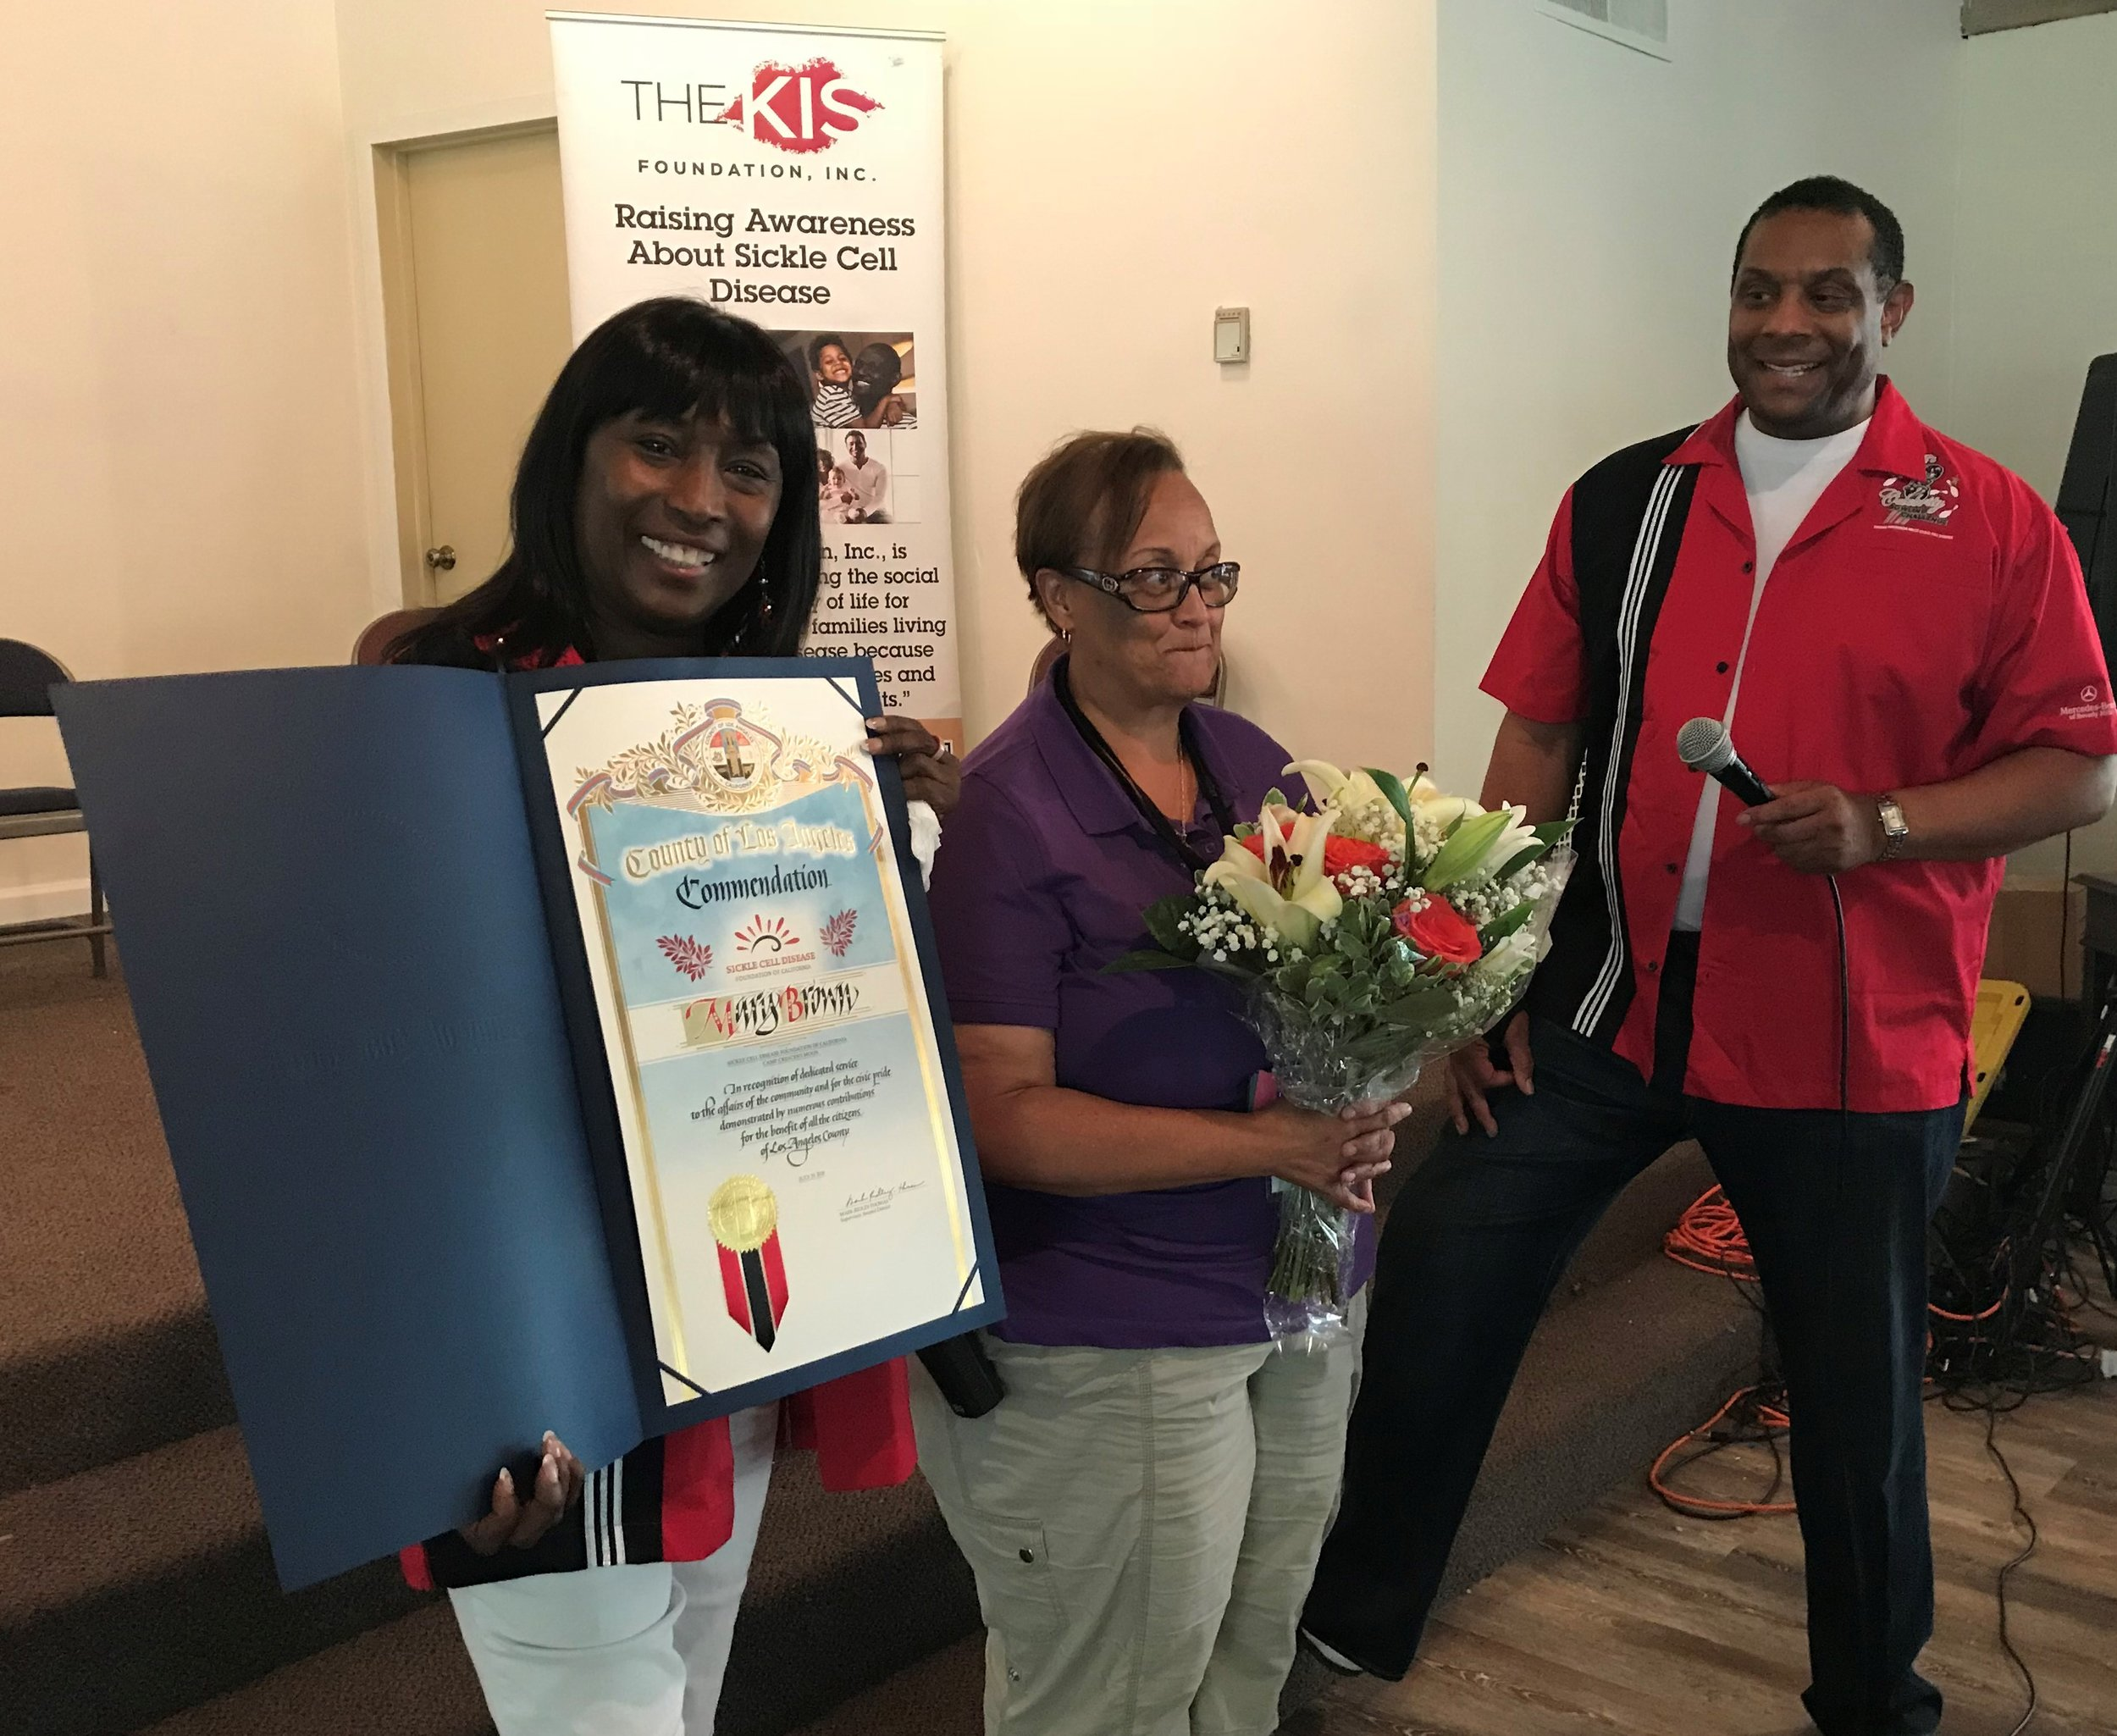 André Dawson, KISF Board Member, presented Mrs. Brown with flowers and a Commendation from Supervisor Mark Ridley-Thomas. We're so happy to present our State SCD Foundation with this well-deserved honor.